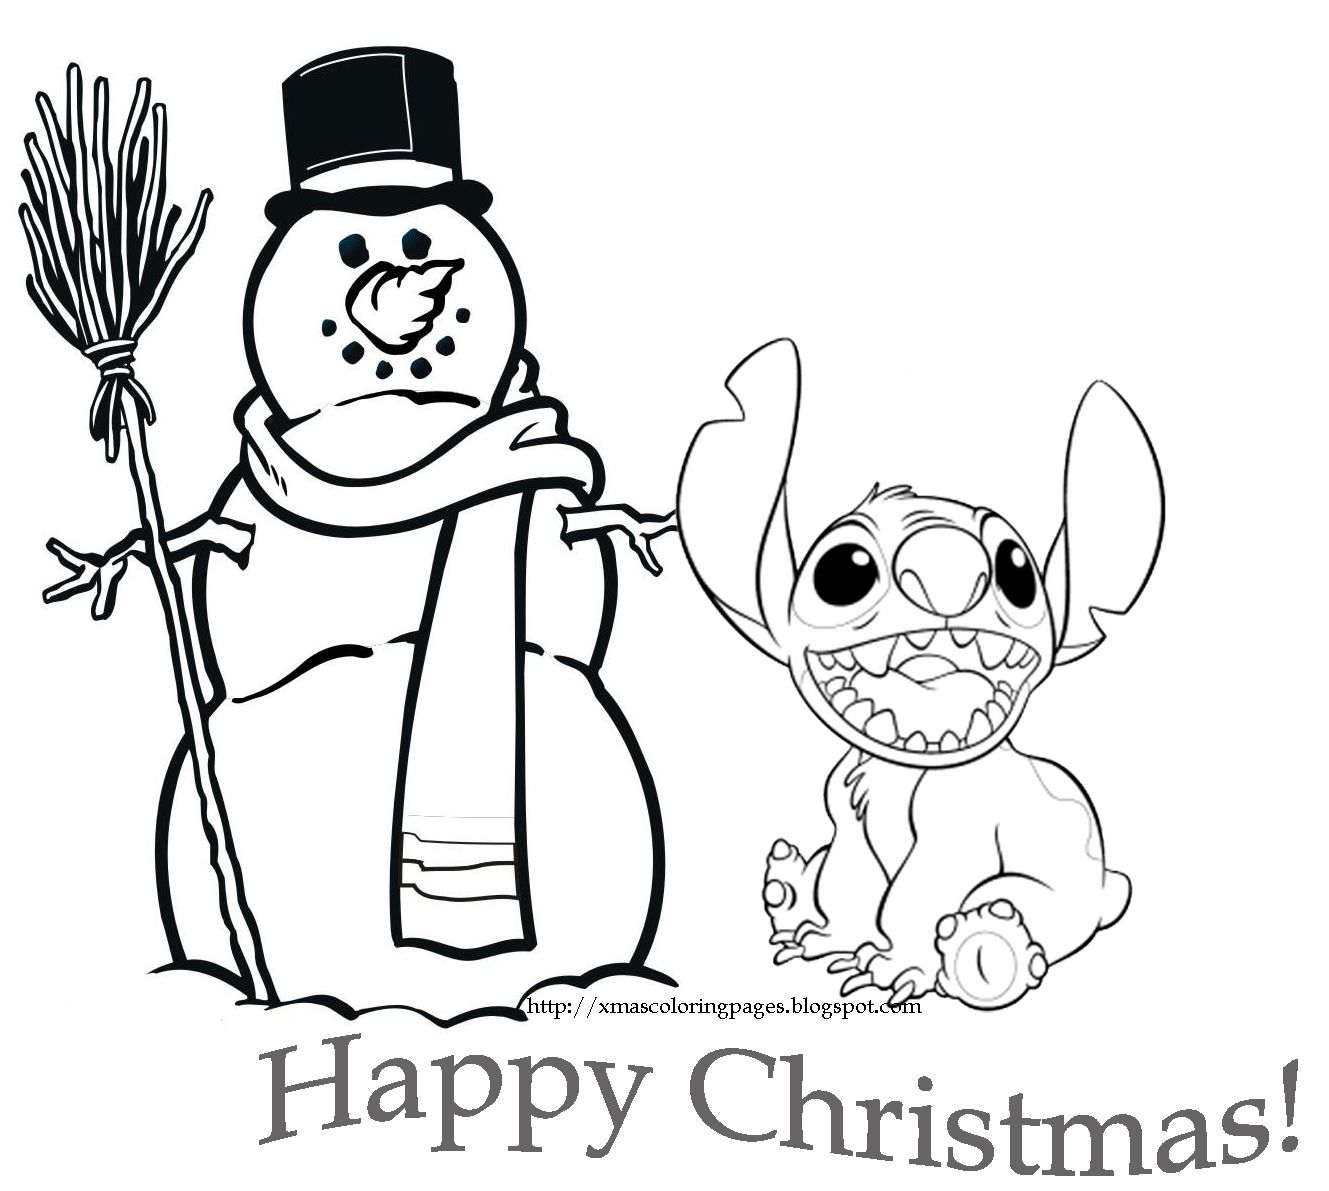 Coloring Pages Disney Coloring Pages Christmas disney coloring pages christmas eassume com 1000 images about colouring on pinterest disney